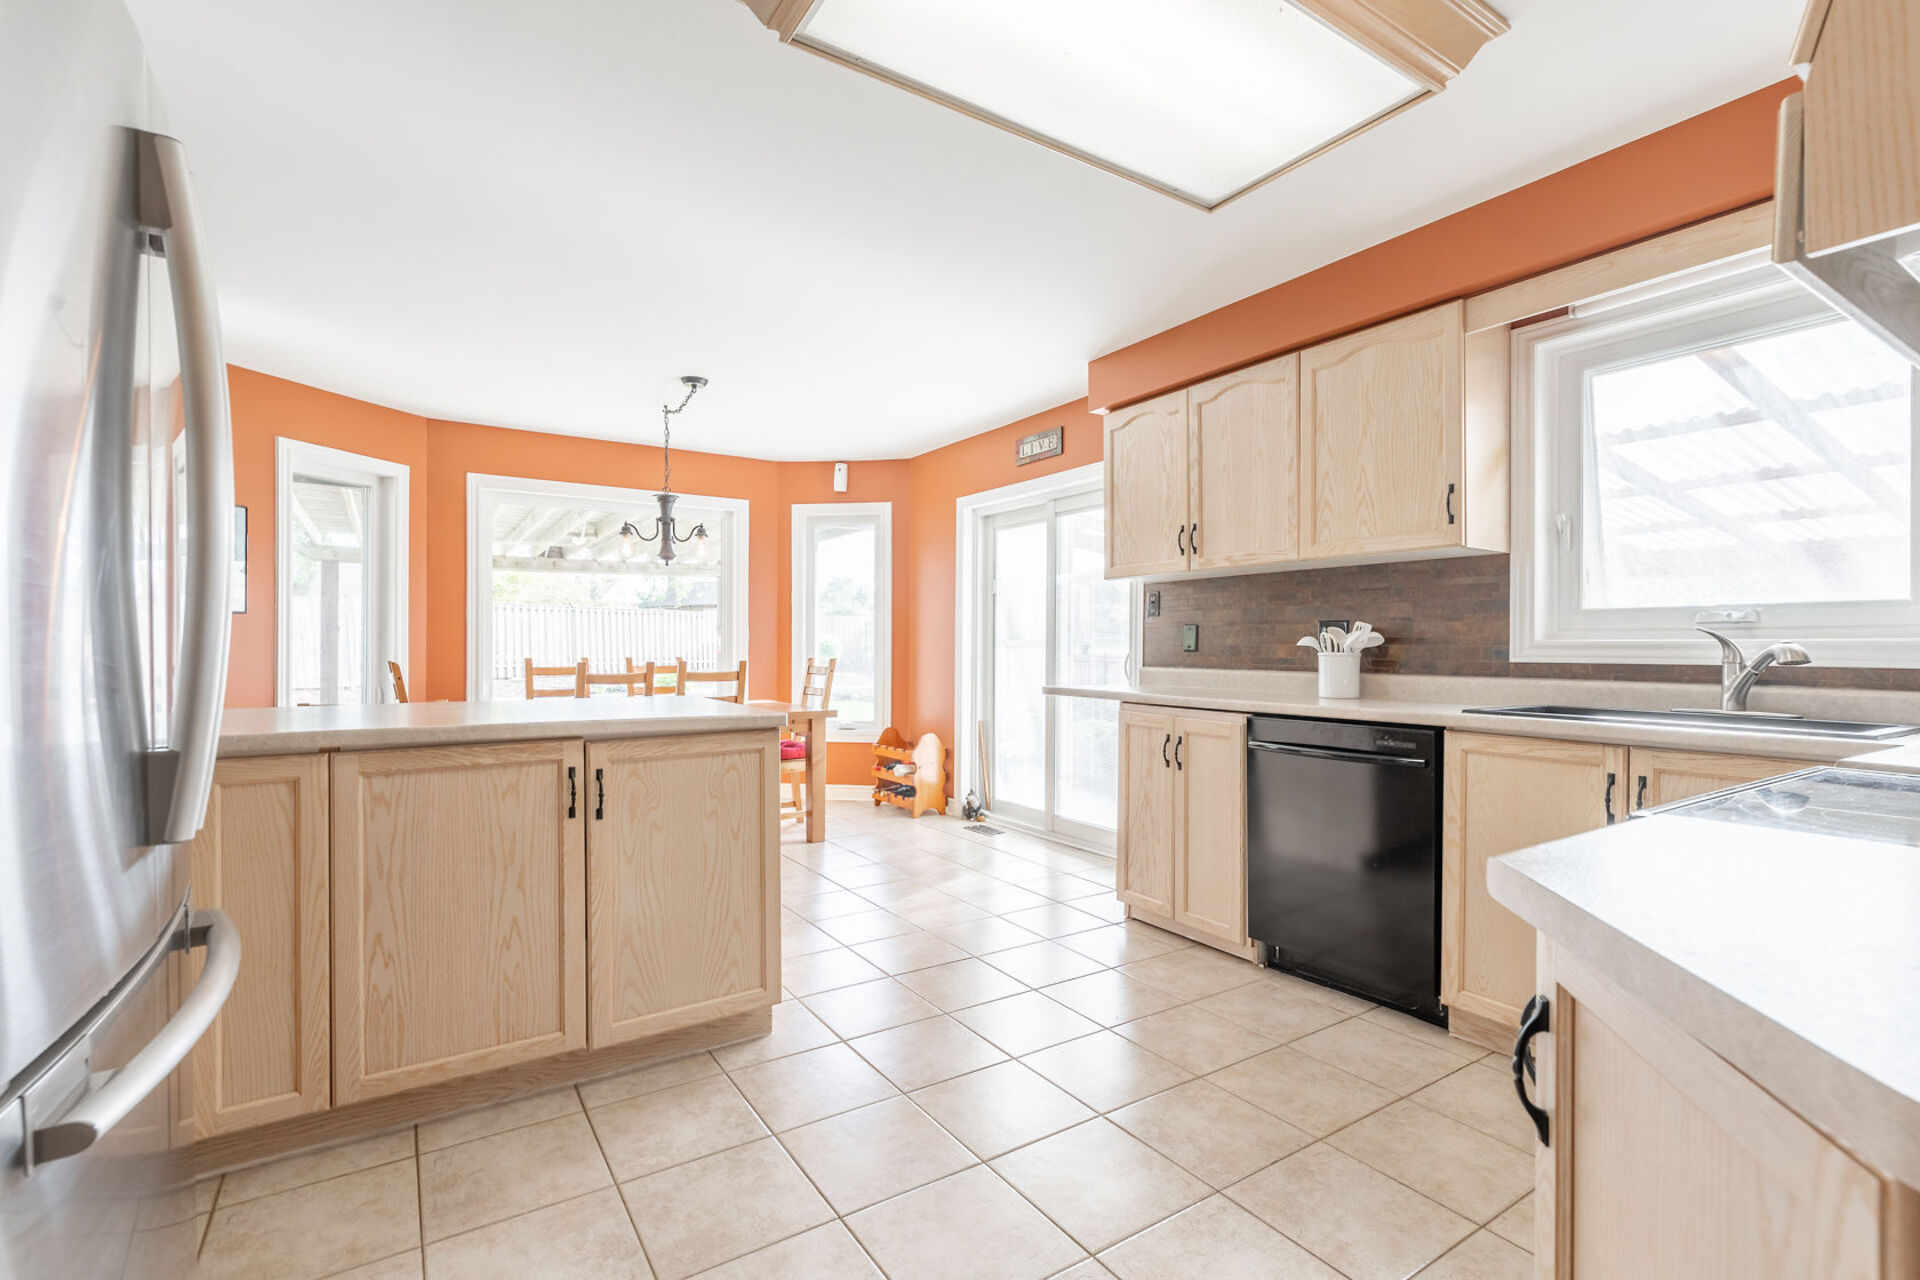 virtual-tour-302461-23 at 47 Chianti Cres, Stoney Creek, Hamilton